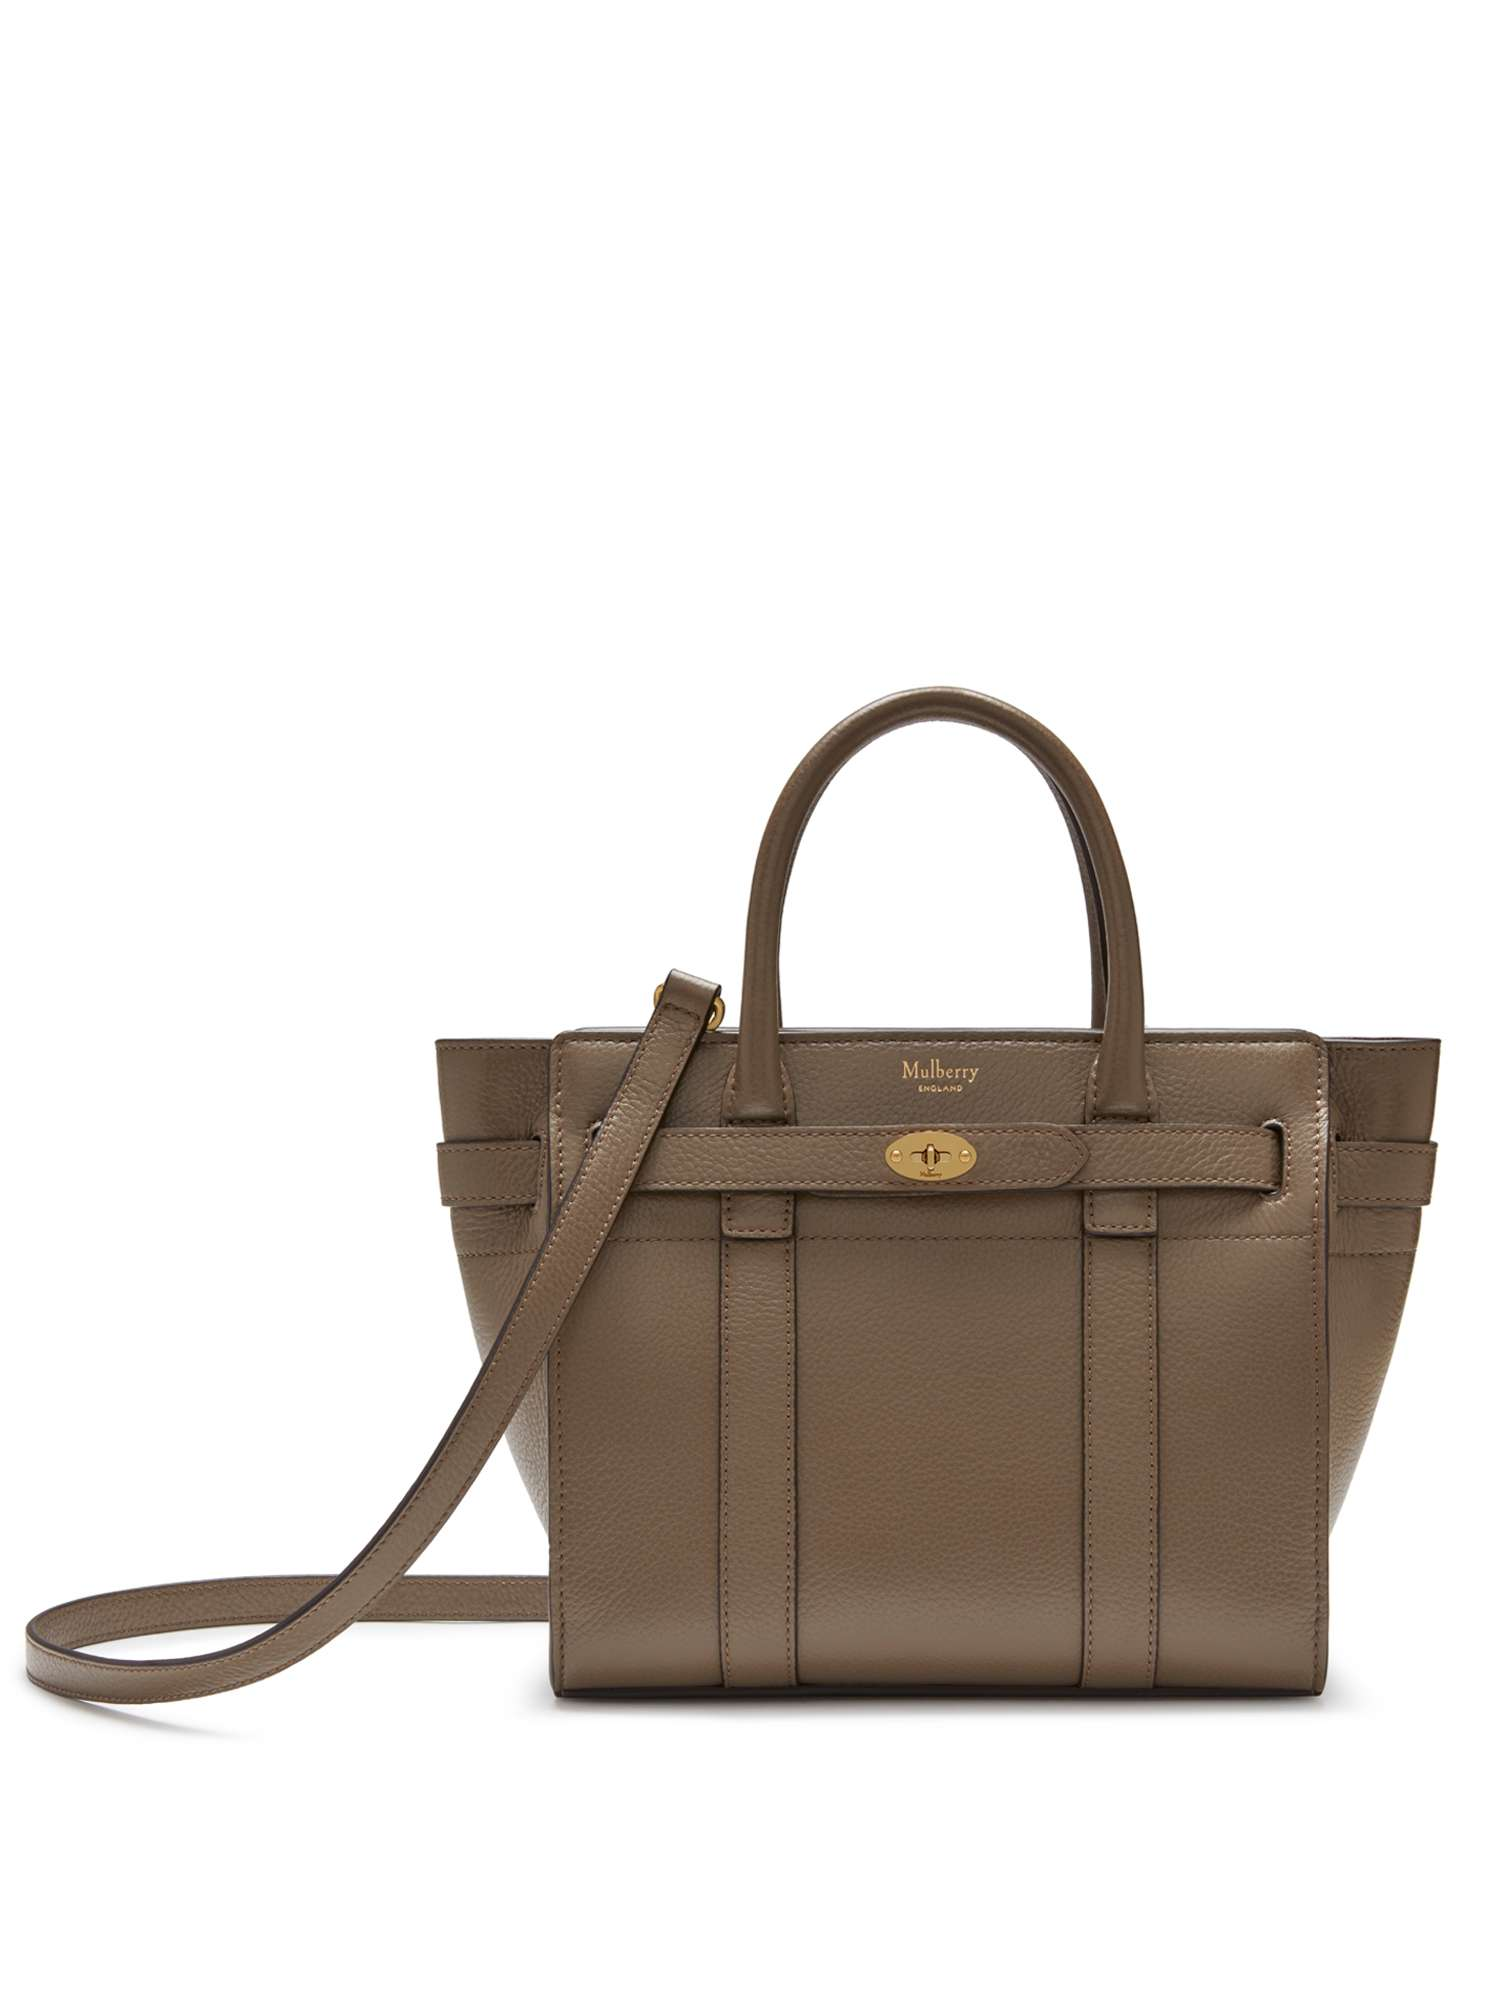 Mulberry Handbags   Shop Women s Mulberry Bags - House of Fraser 026fa78812